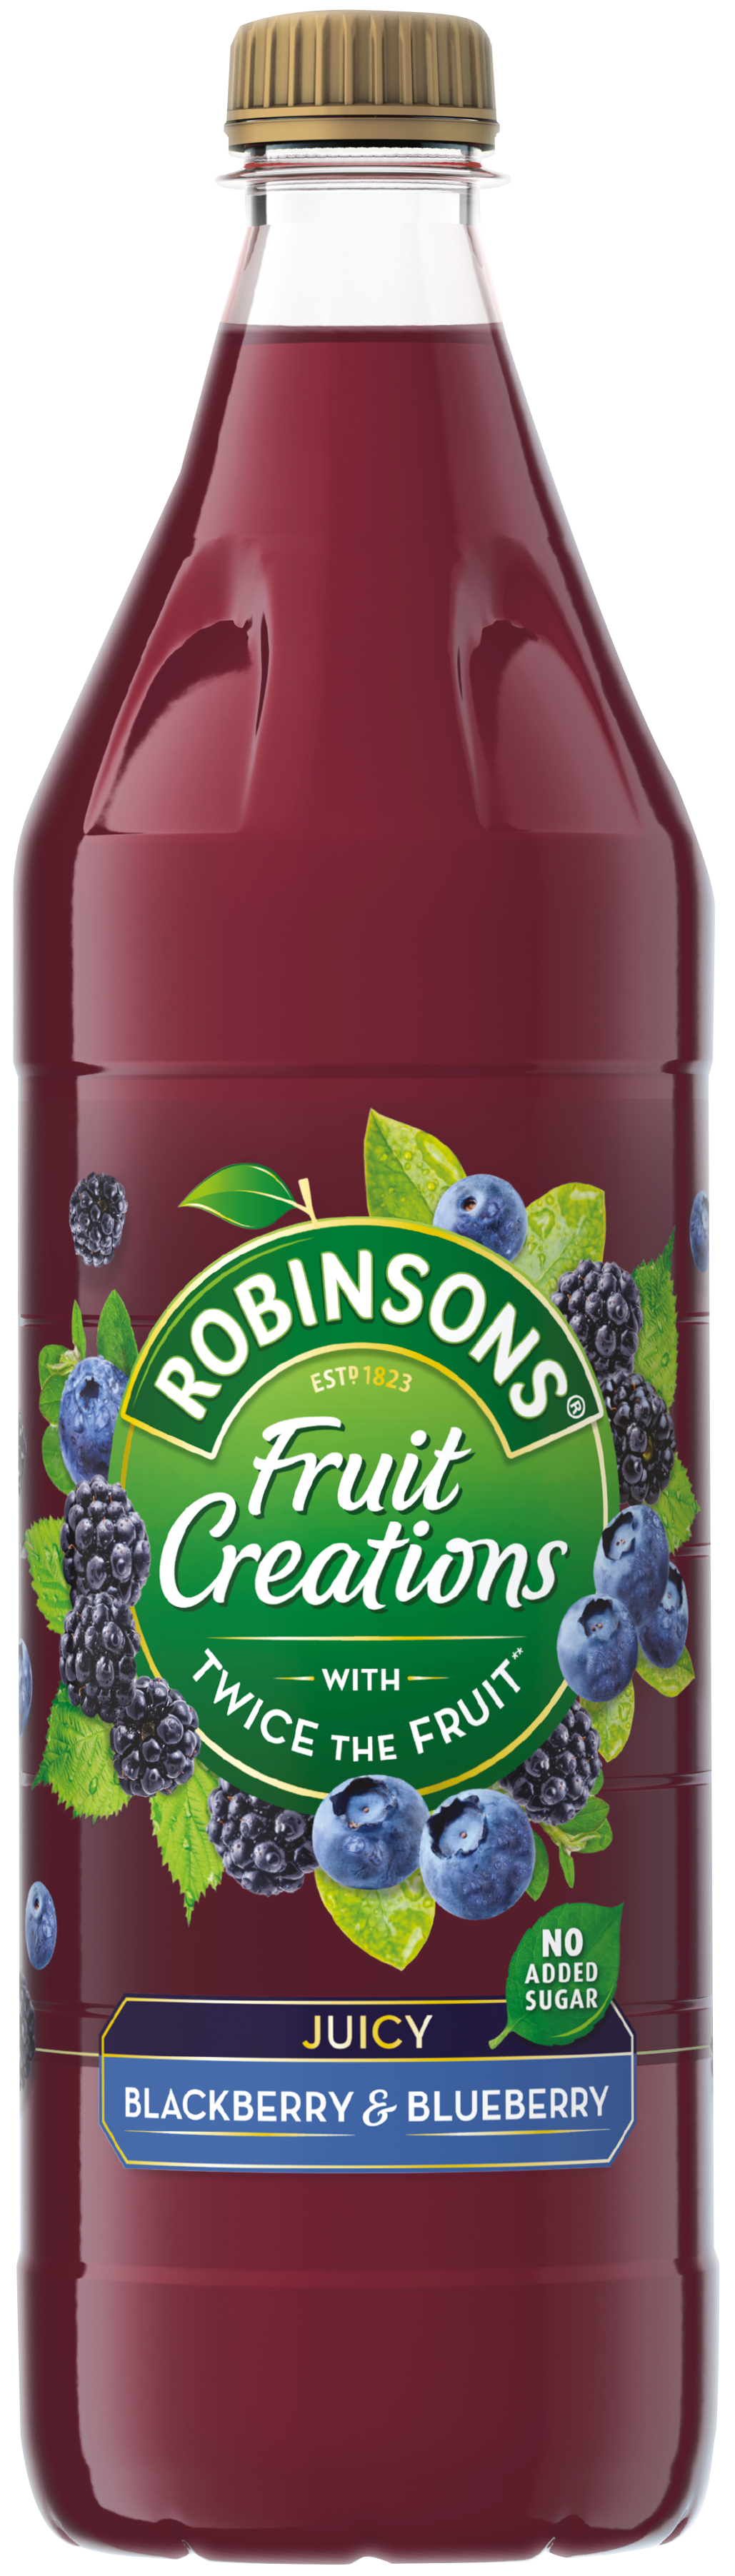 Bottle - fruit creations